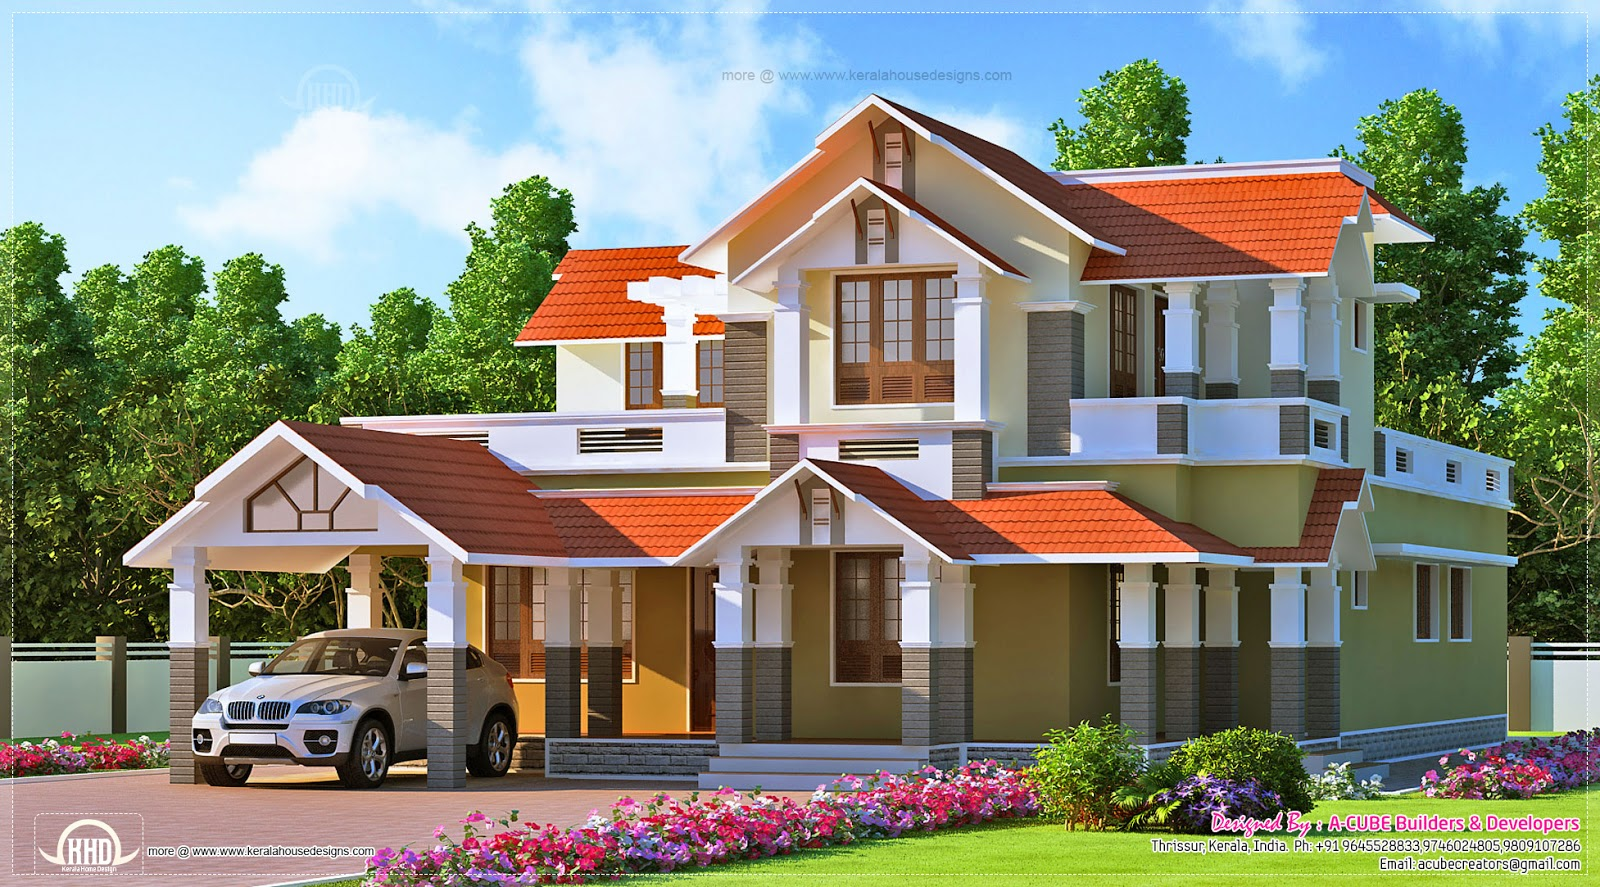 Kerala style dream home design in 2900 sq.feet  House Design Plans